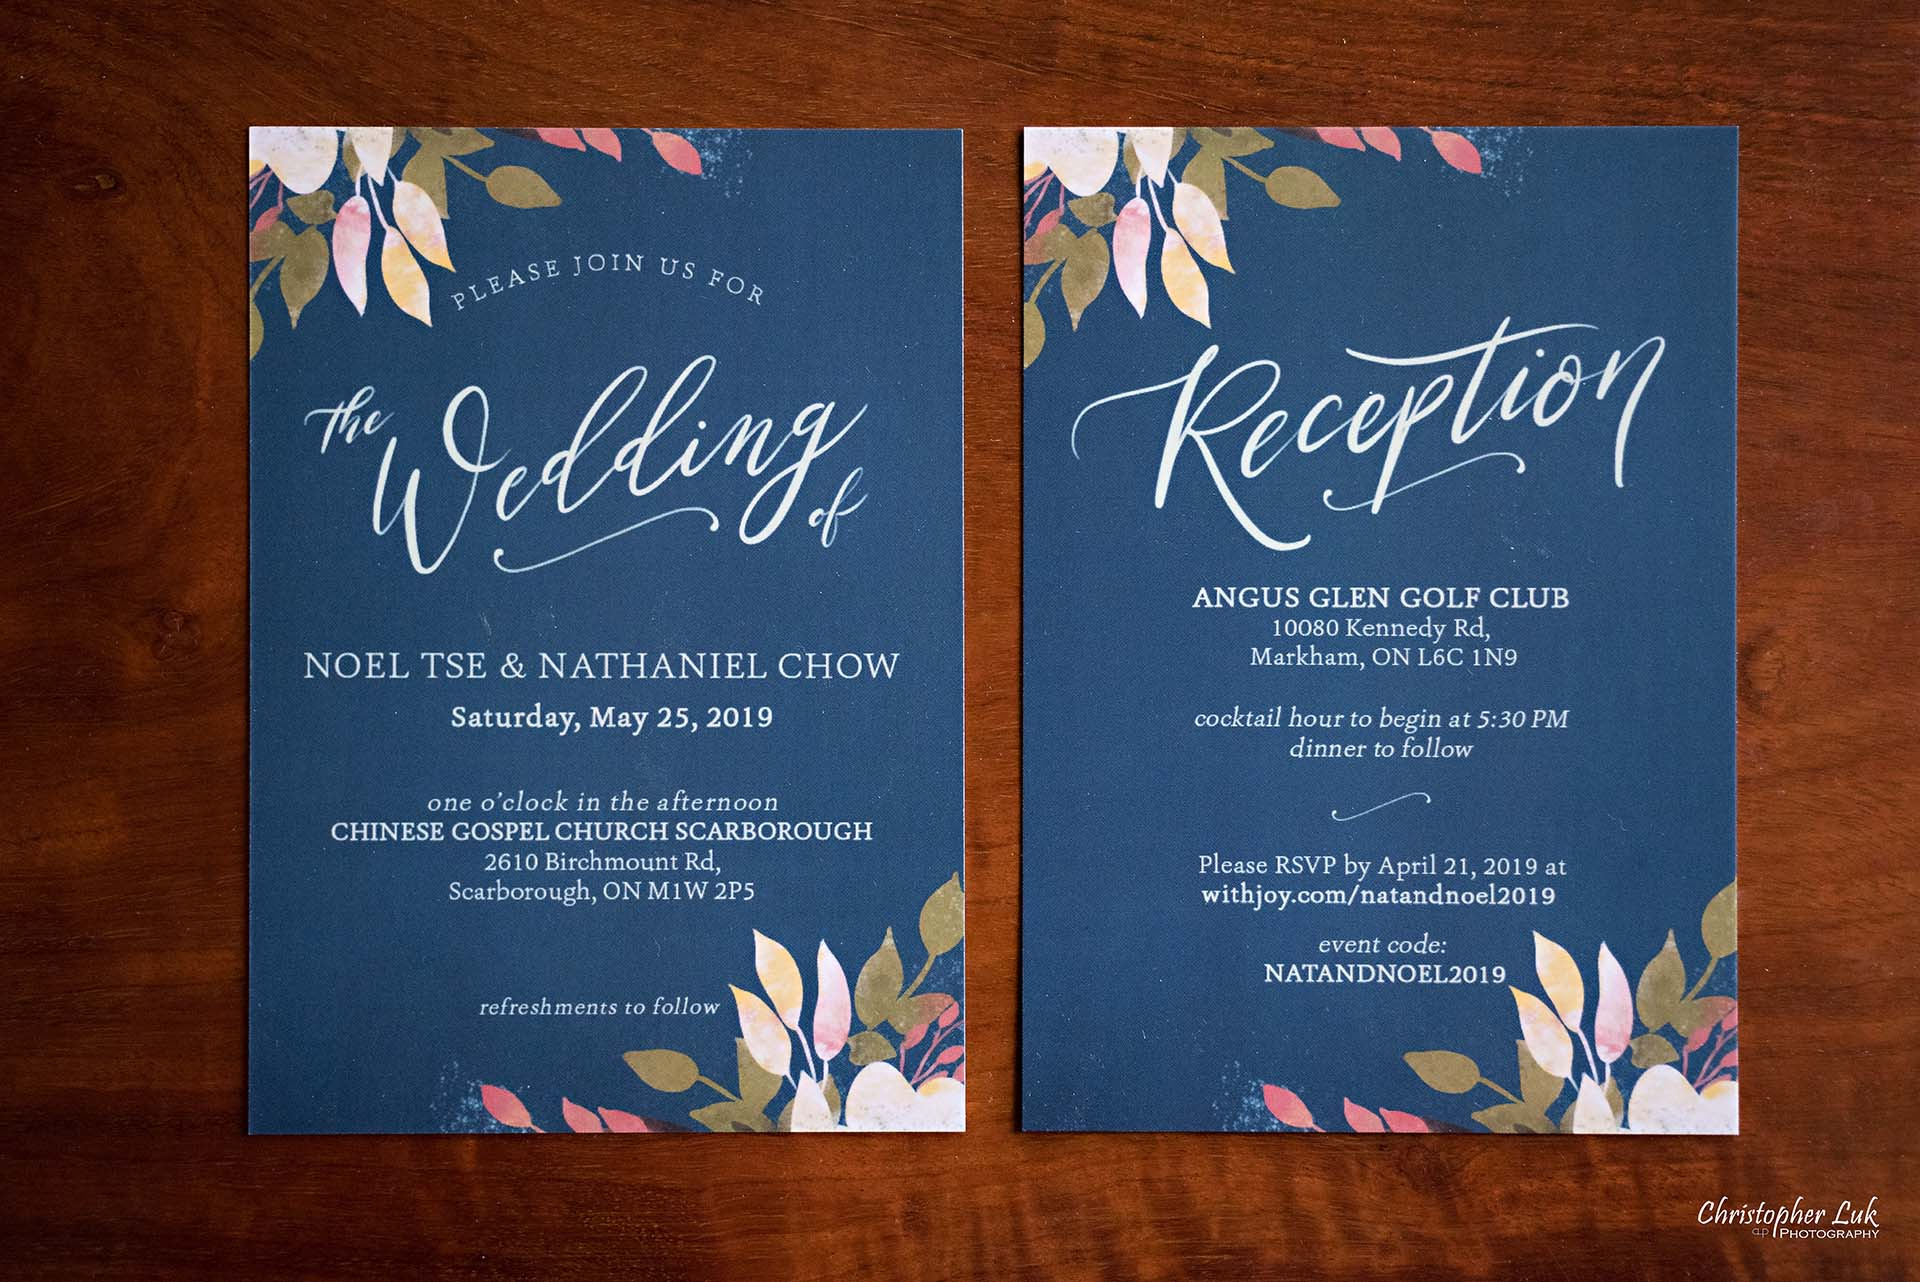 Christopher Luk Toronto Wedding Photographer Bride Getting Ready Preparations Printed Paper Floral Design Invitations Stationary Stationery Church Ceremony Dinner Reception